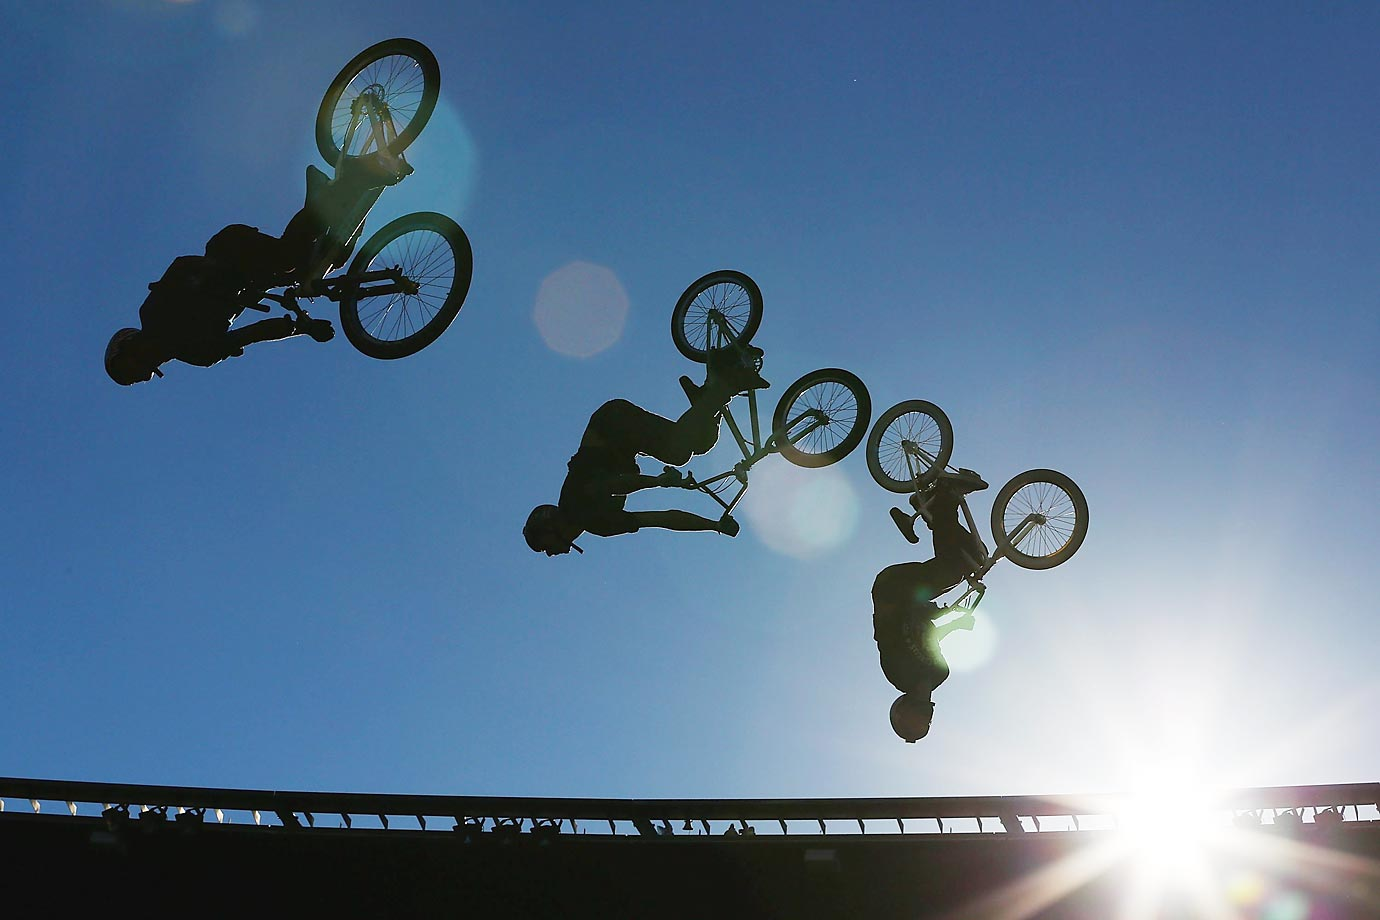 BMX riders perform during Nitro Circus Live at Westpac Stadium in Wellington, New Zealand.